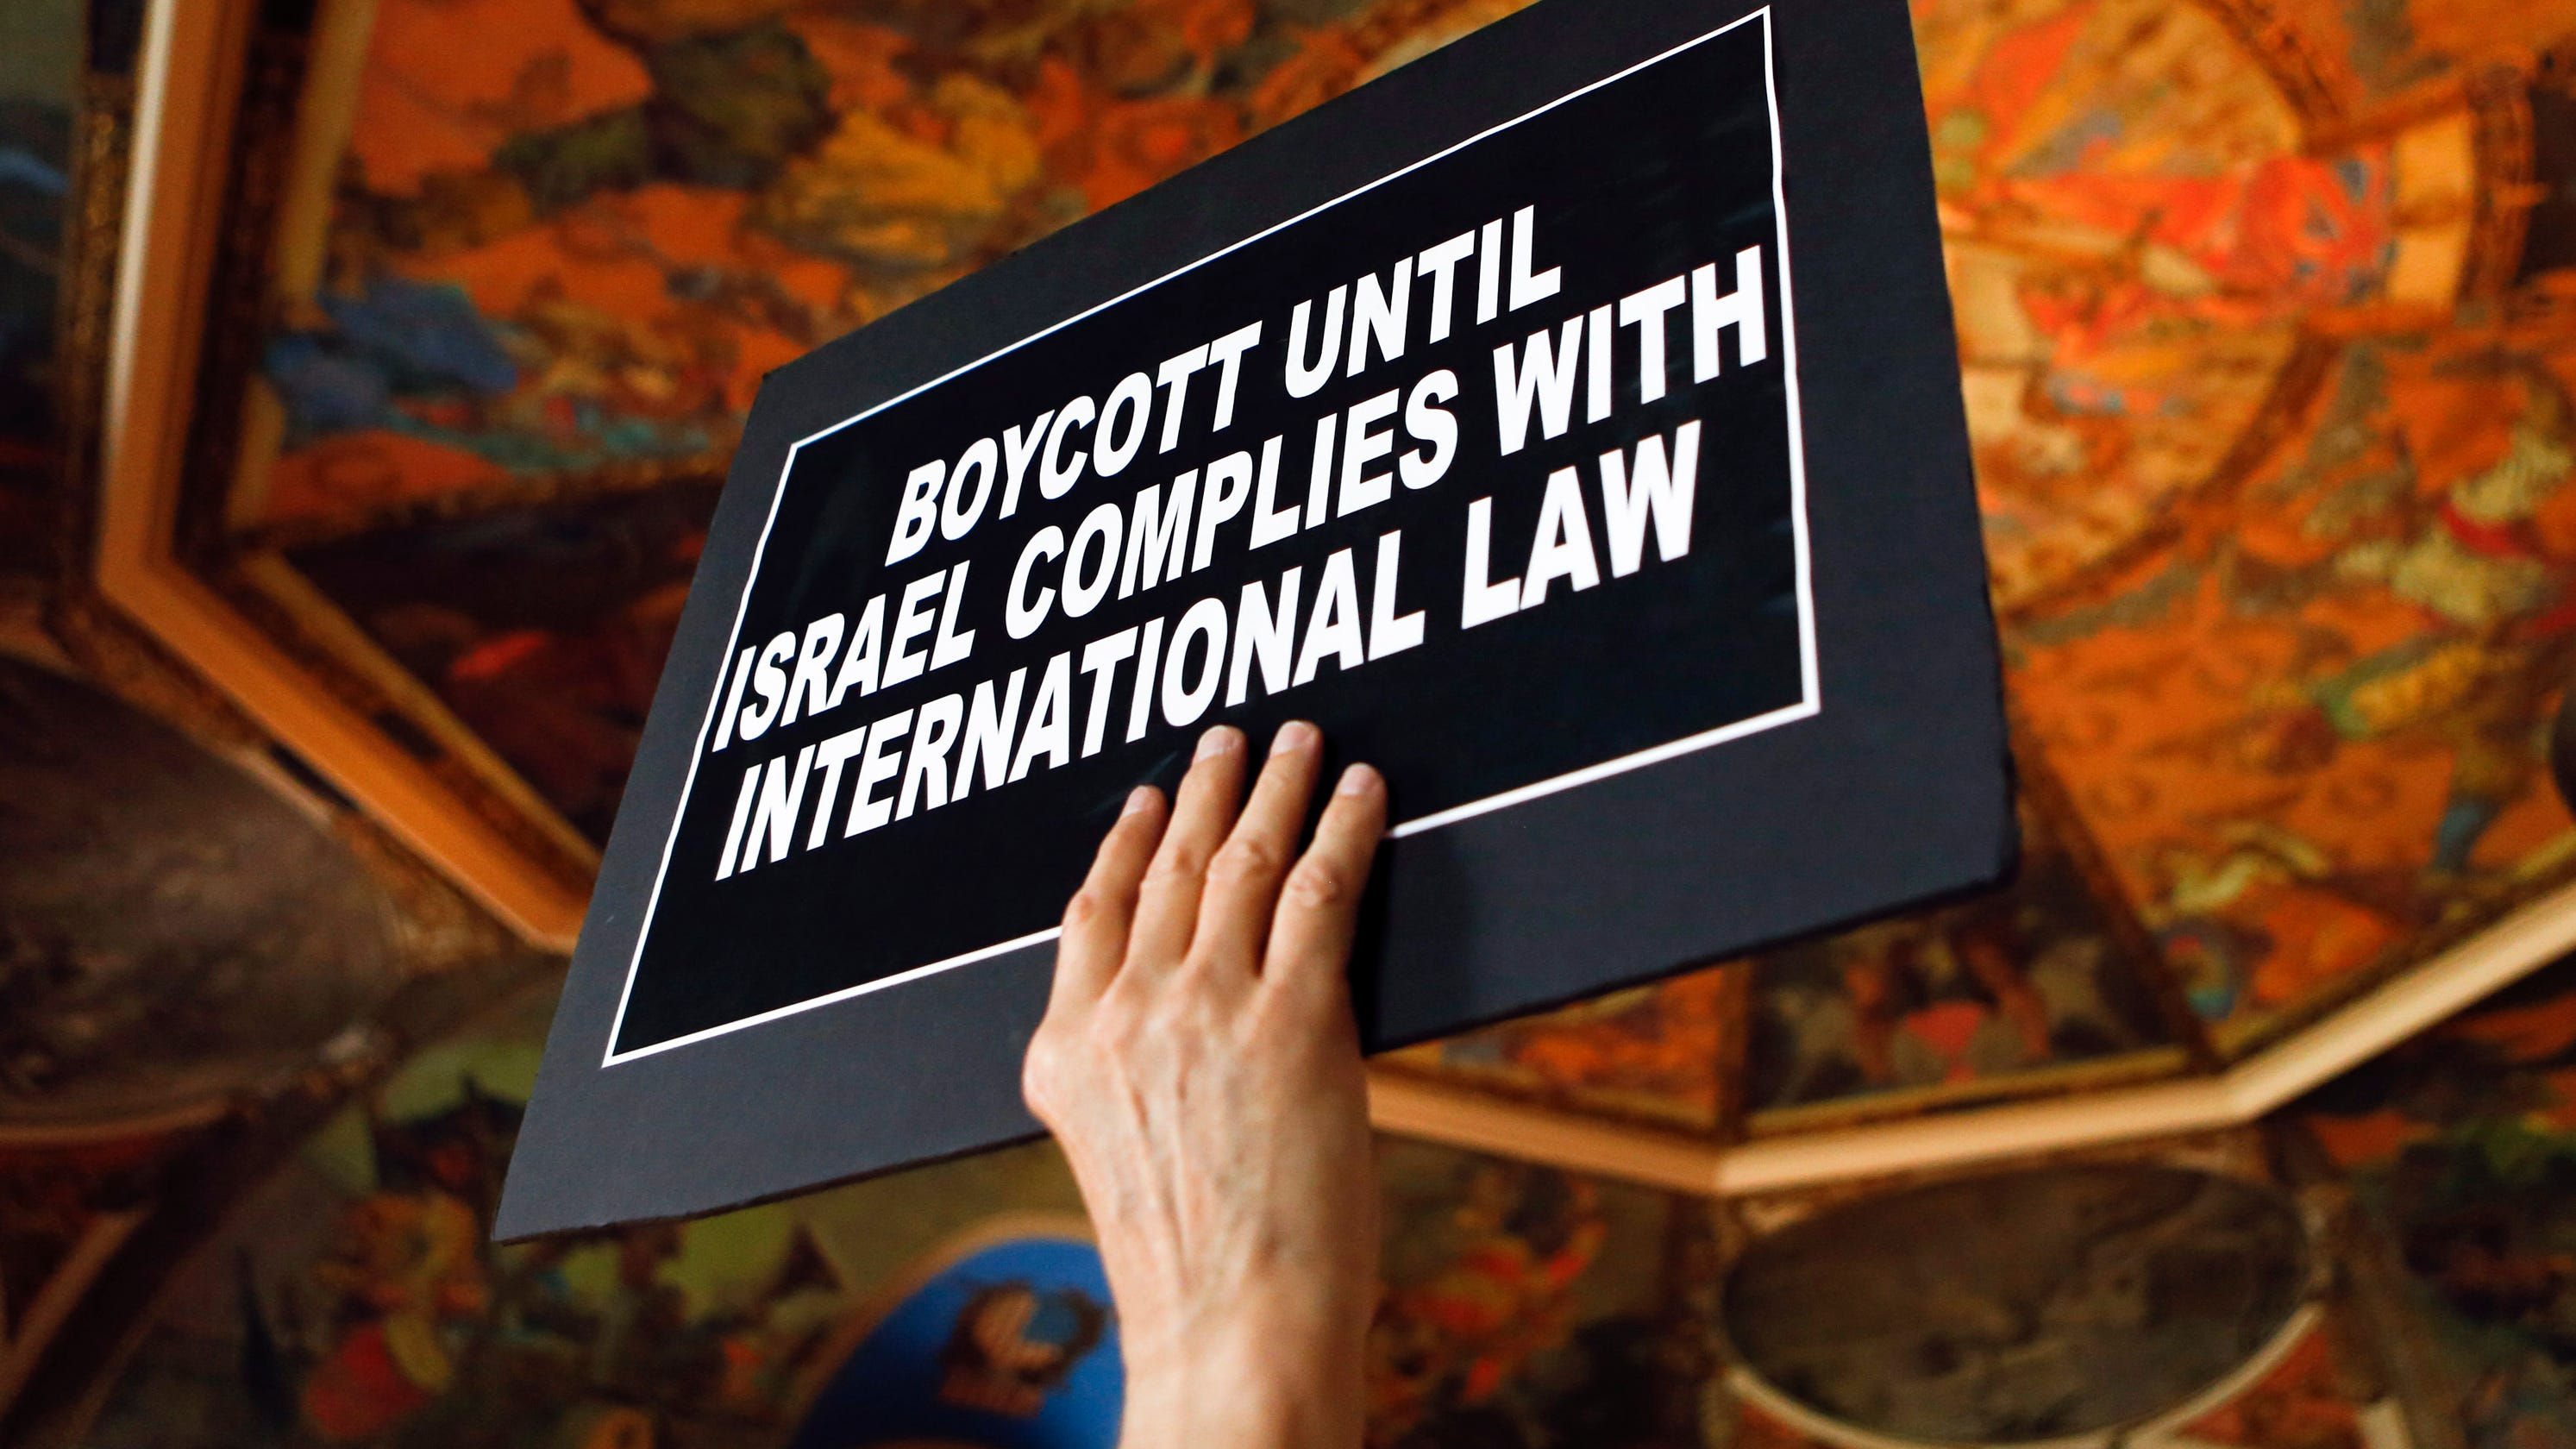 Pro Israel Statehouse Lobbyists Work Behind The Scenes To Mute Bds